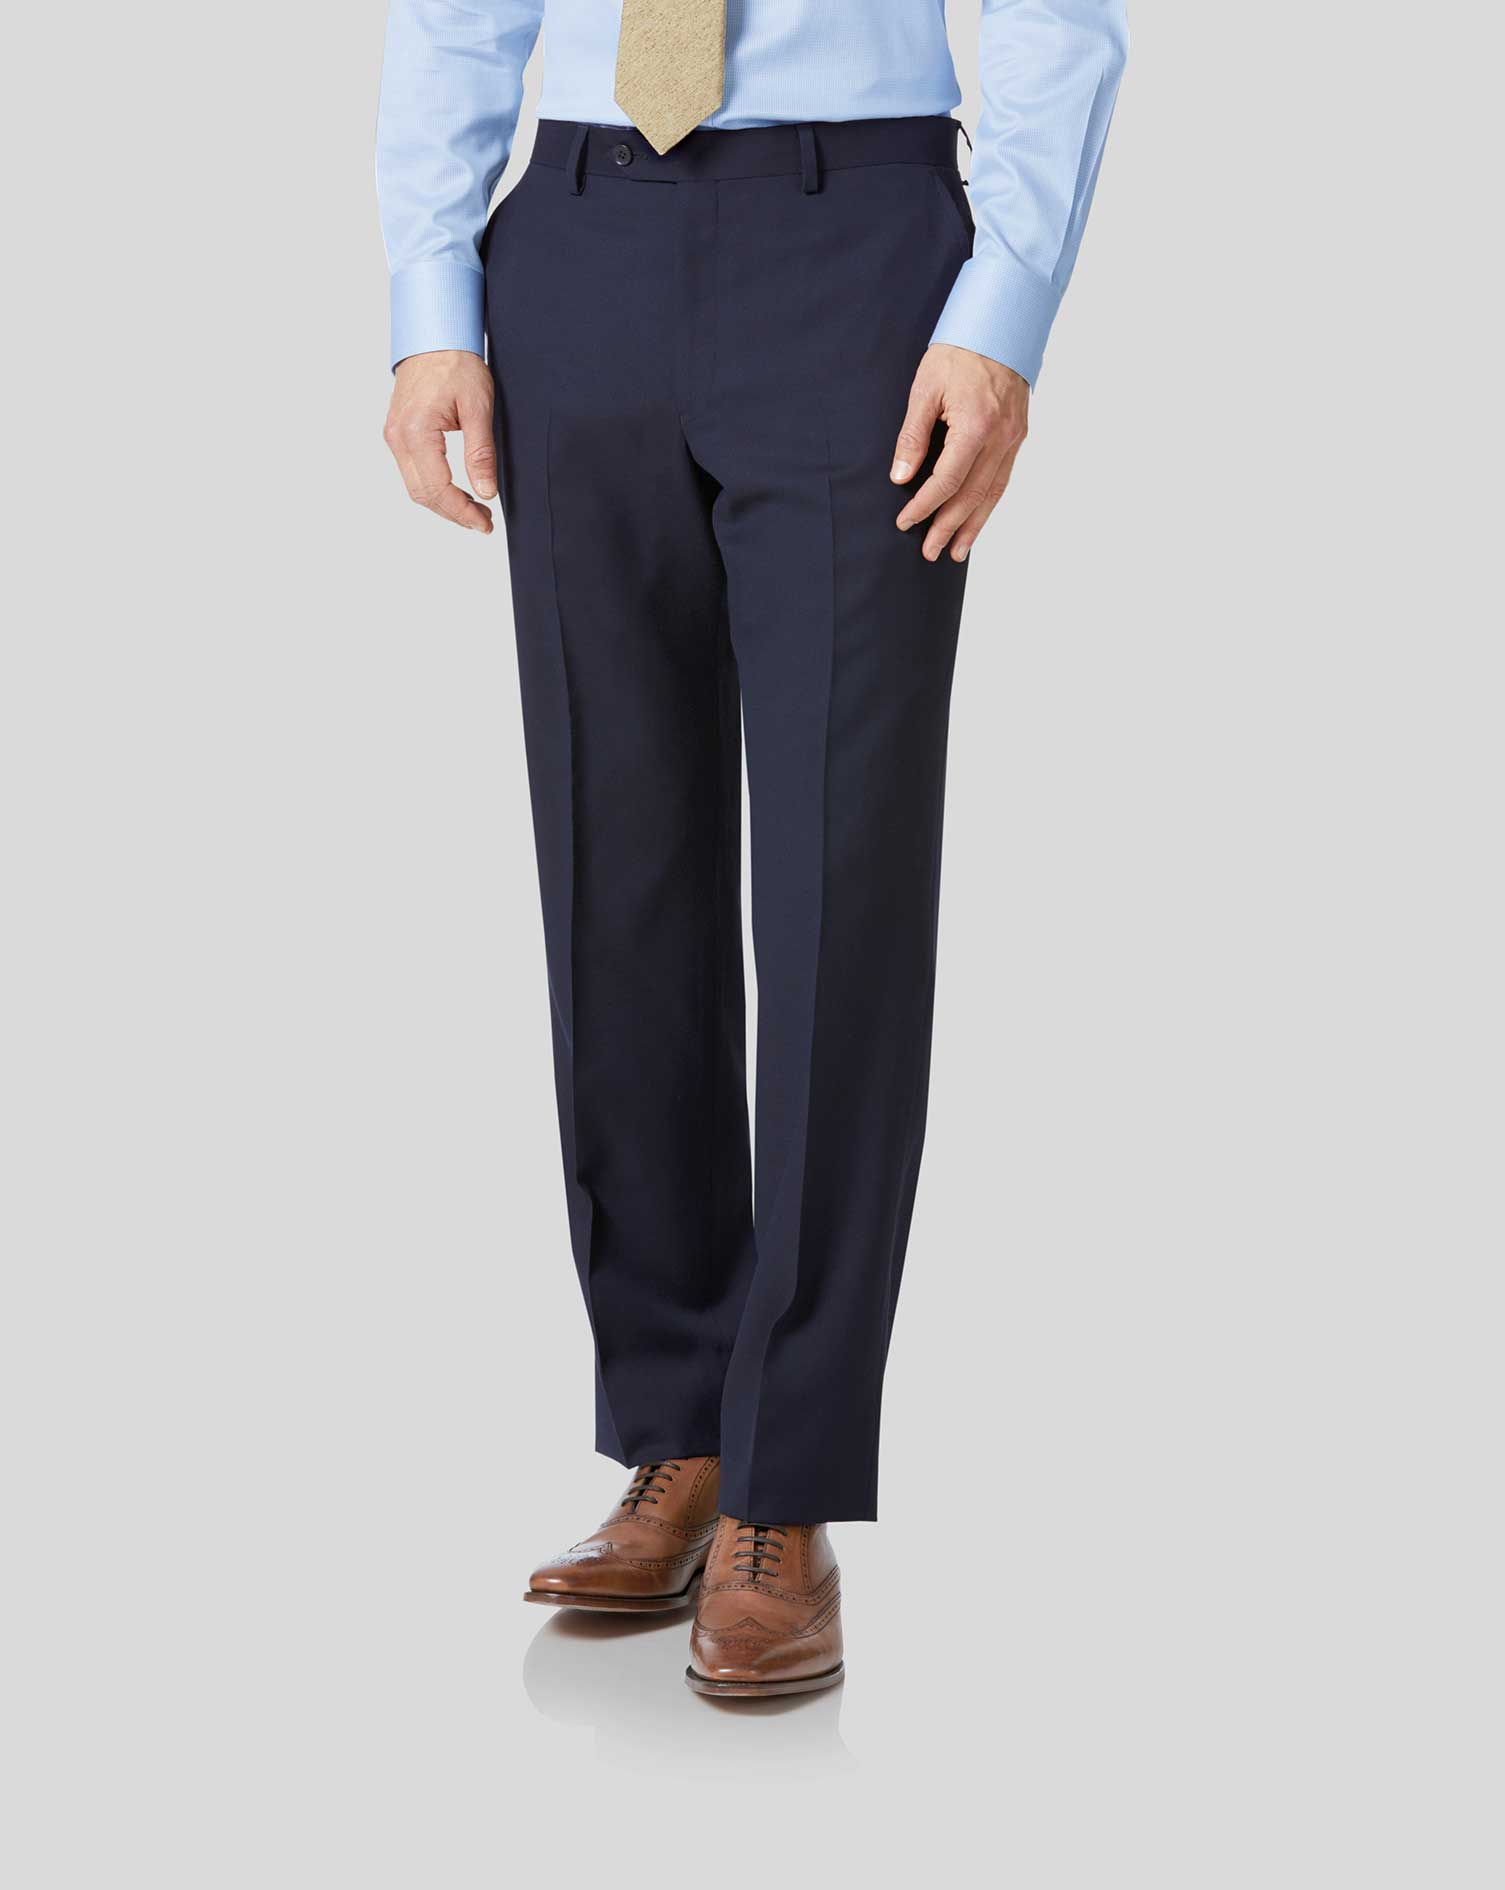 Pantalon de costume business bleu marine coupe droite en twill